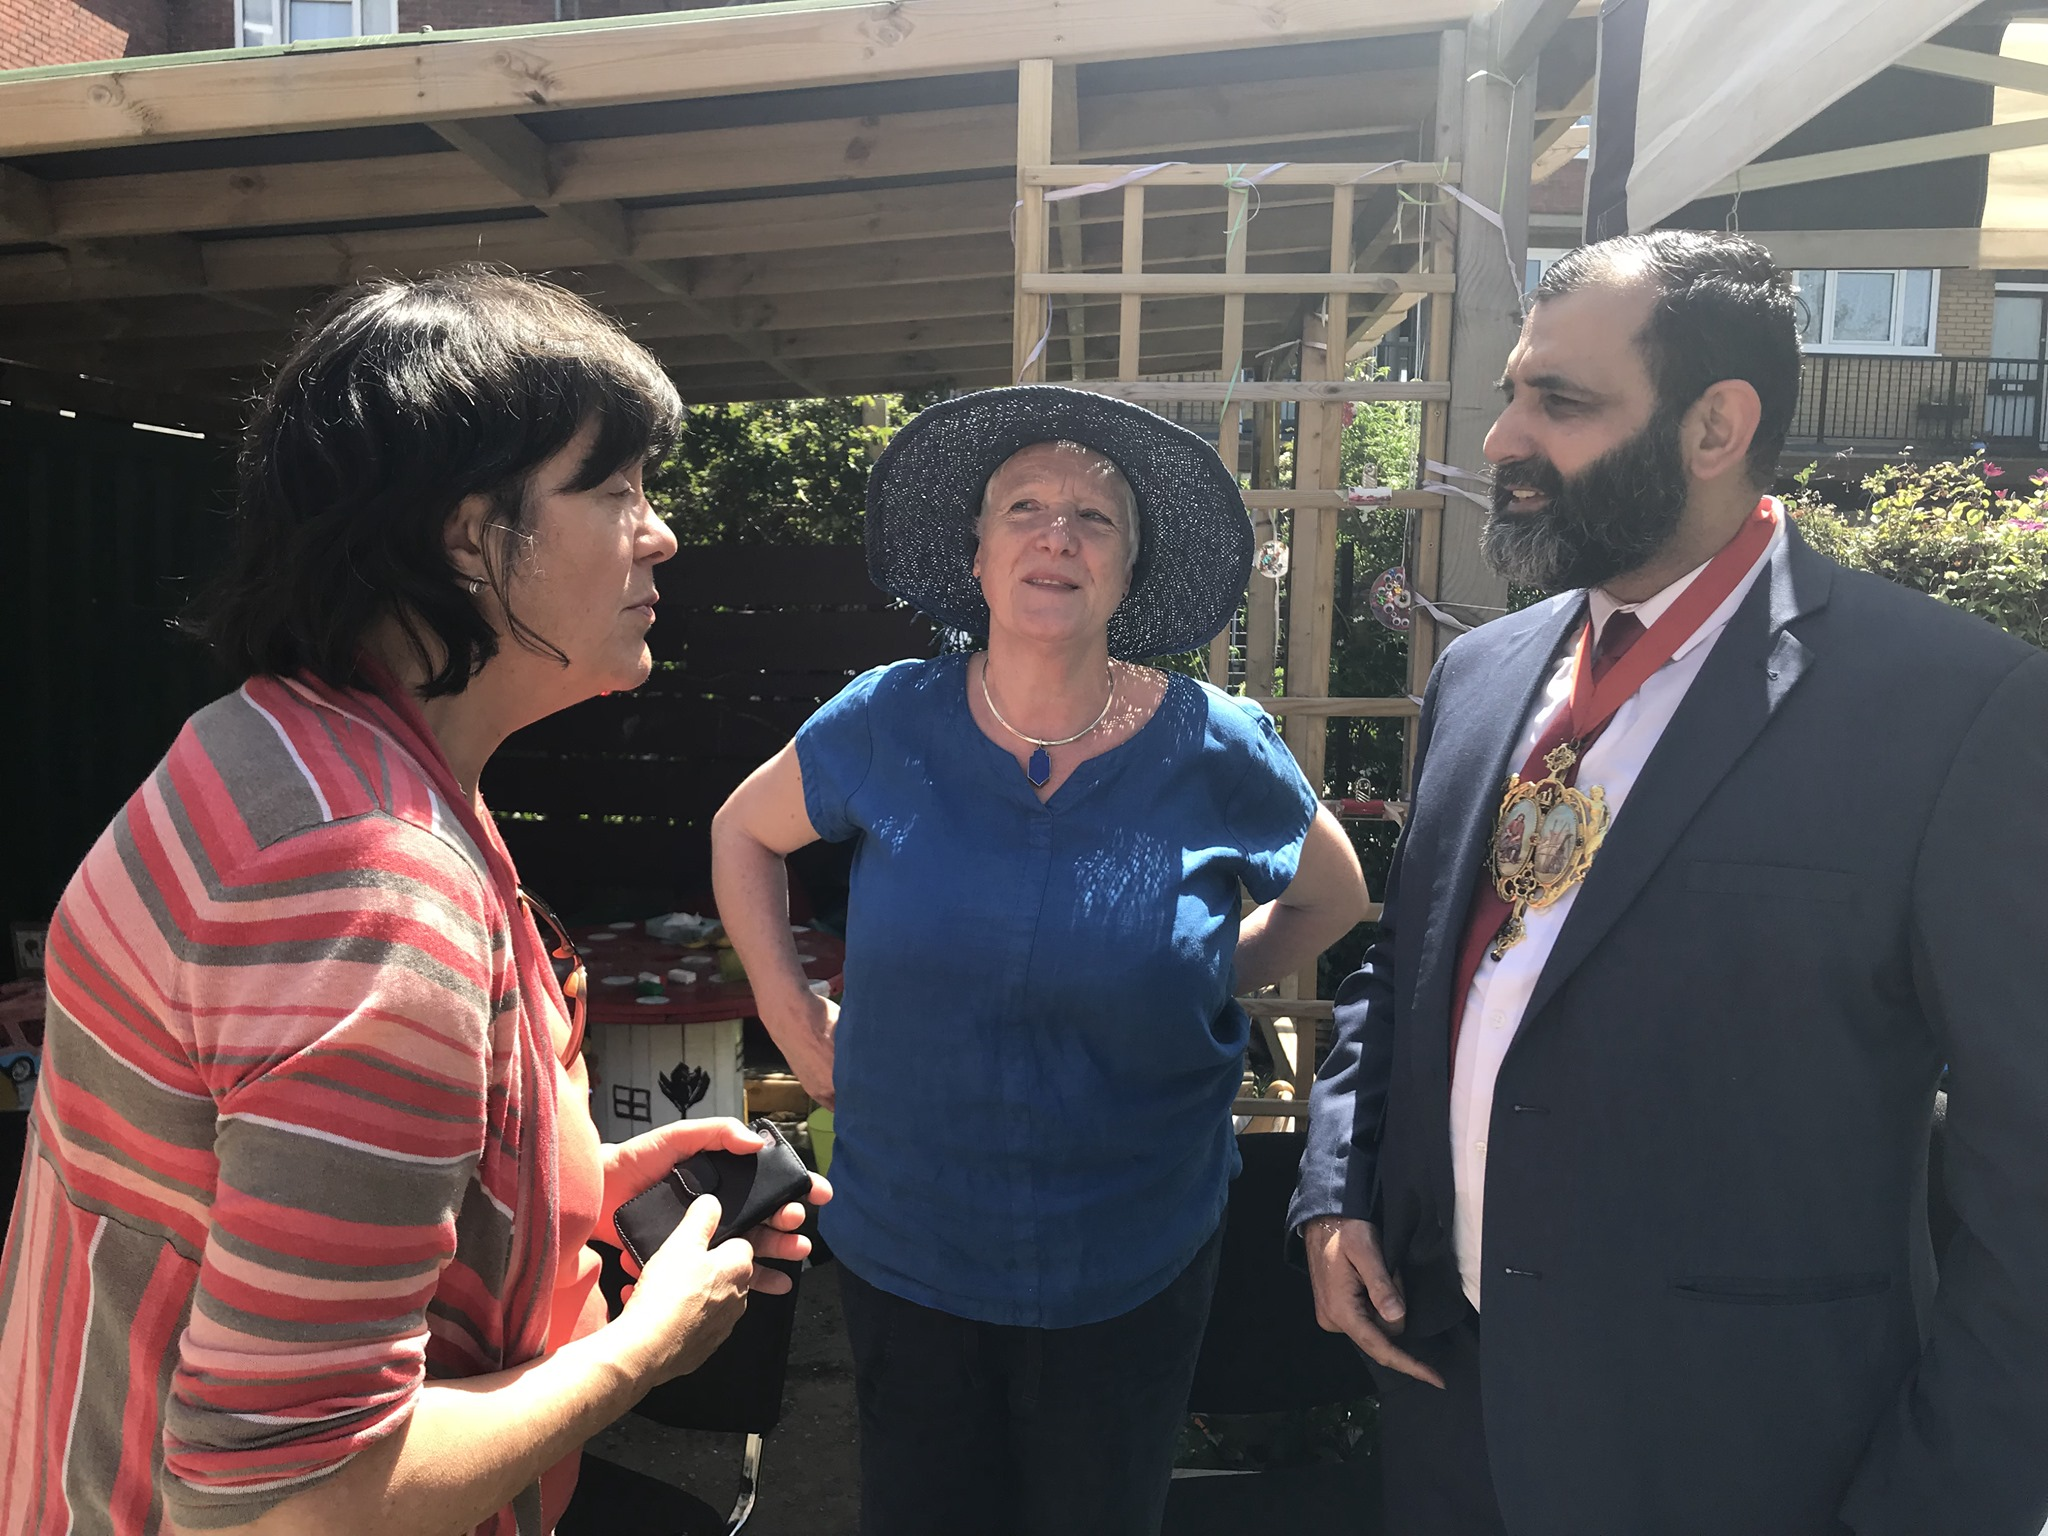 L to R : Cllr Joan Millbank, Zanne Findlay (Chair of Telegraph Hill Centre Steering Group), and Cllr Tauseef Anwar (Vice Chair of Lewisham Council).